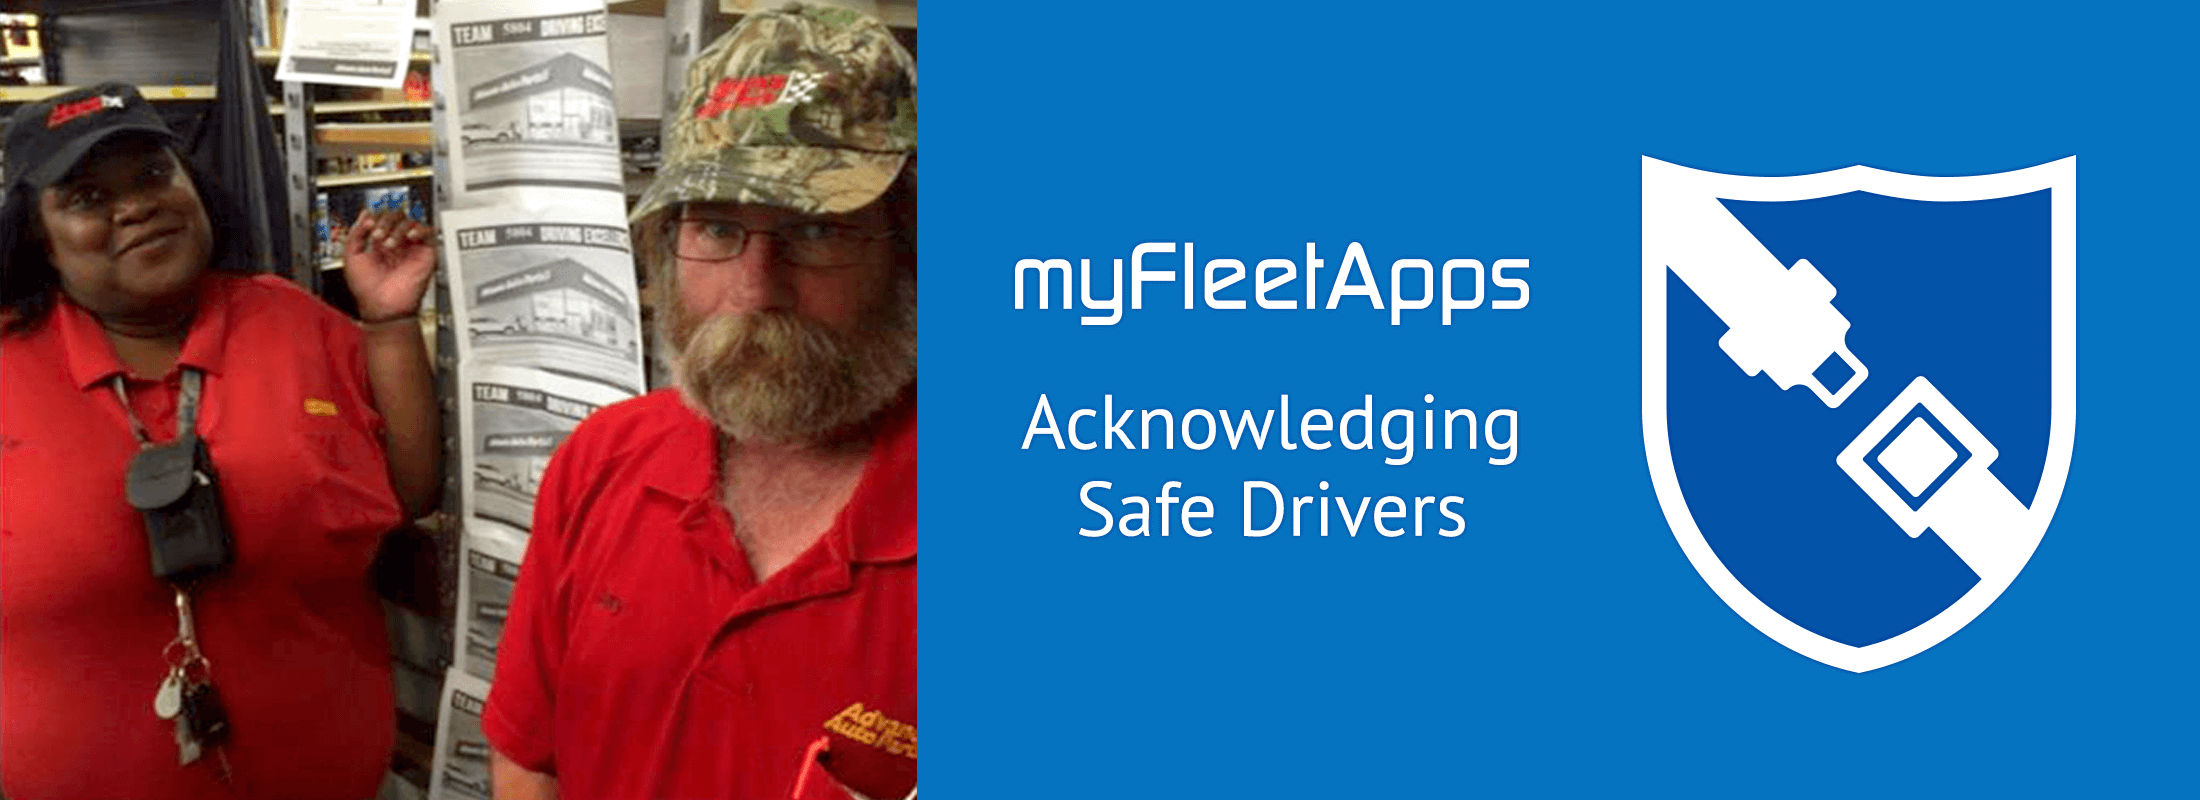 acknowledging driver safety